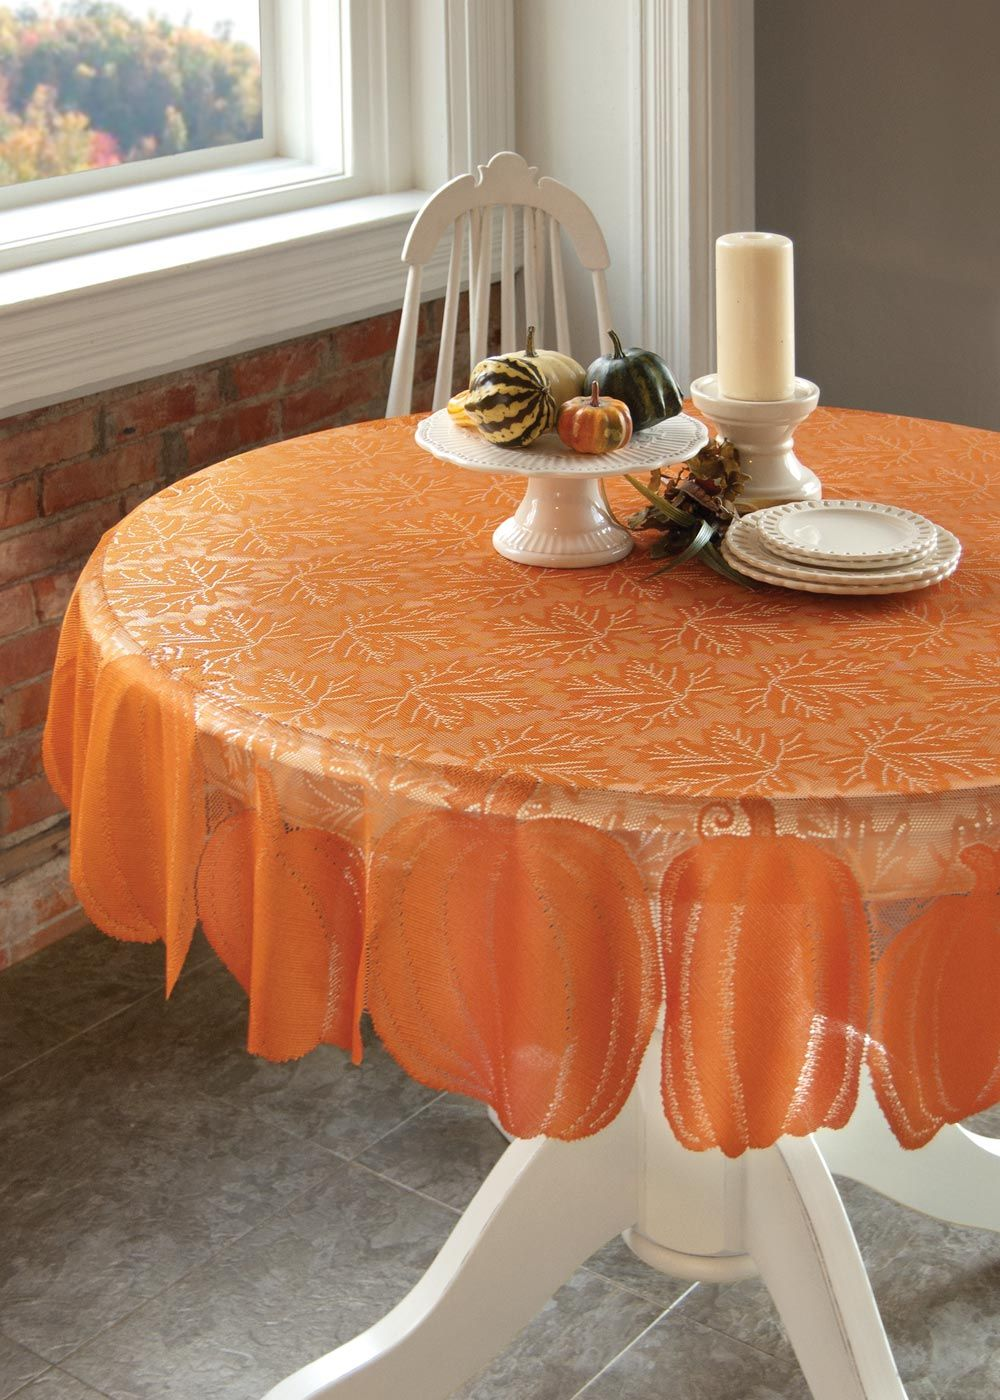 Dining Room Table Toppers Amazing Our Pumpkin Round Table Topper Packs A Punch Of Festive Orange Design Ideas